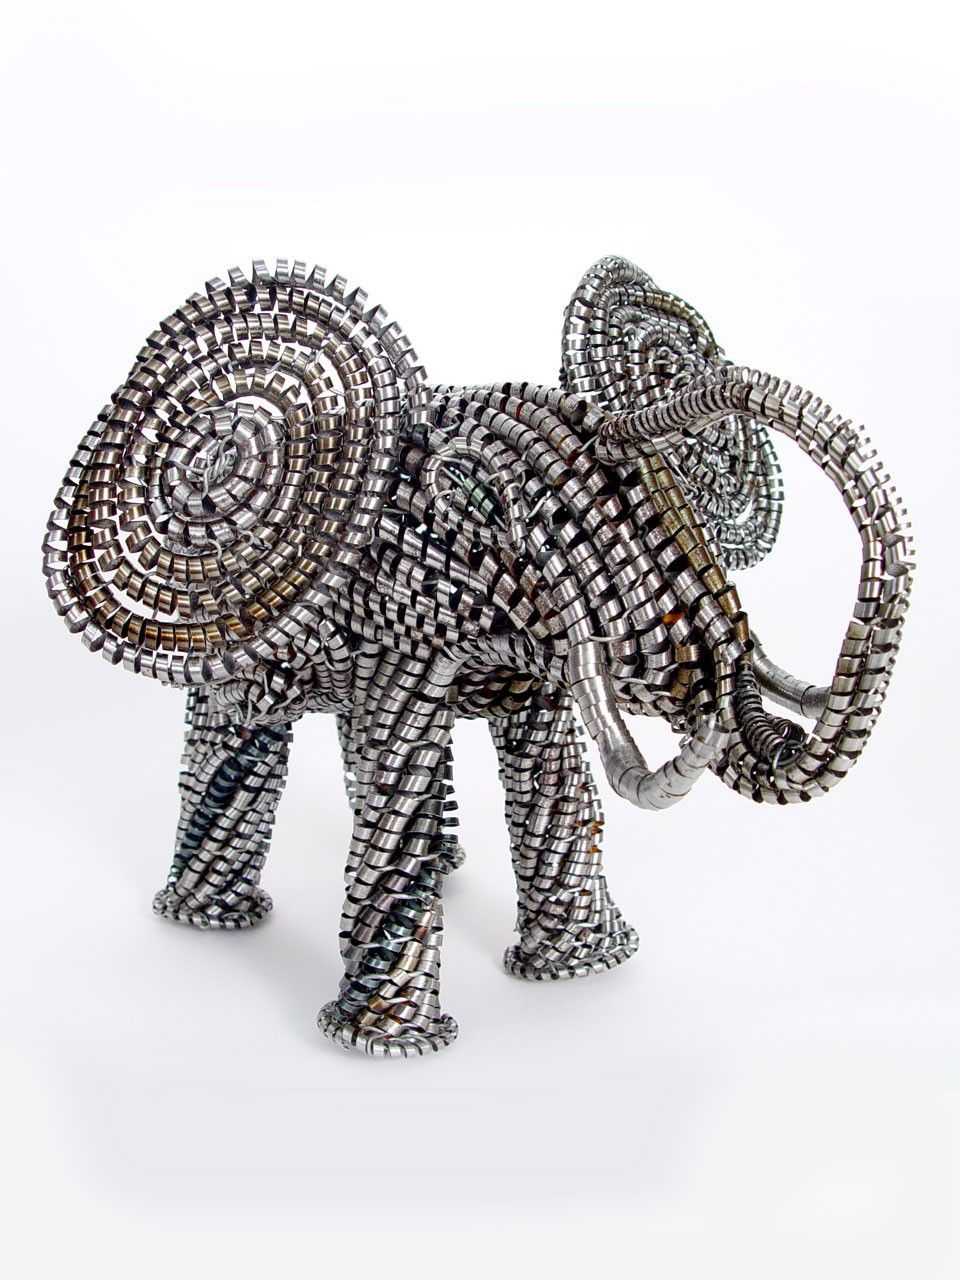 Metal Shaving Elephant - Metal shaving art was invented by former blacksmith Amos Guta in Zimbabwe, and is made almost entirely of recycled materials.  $50.00